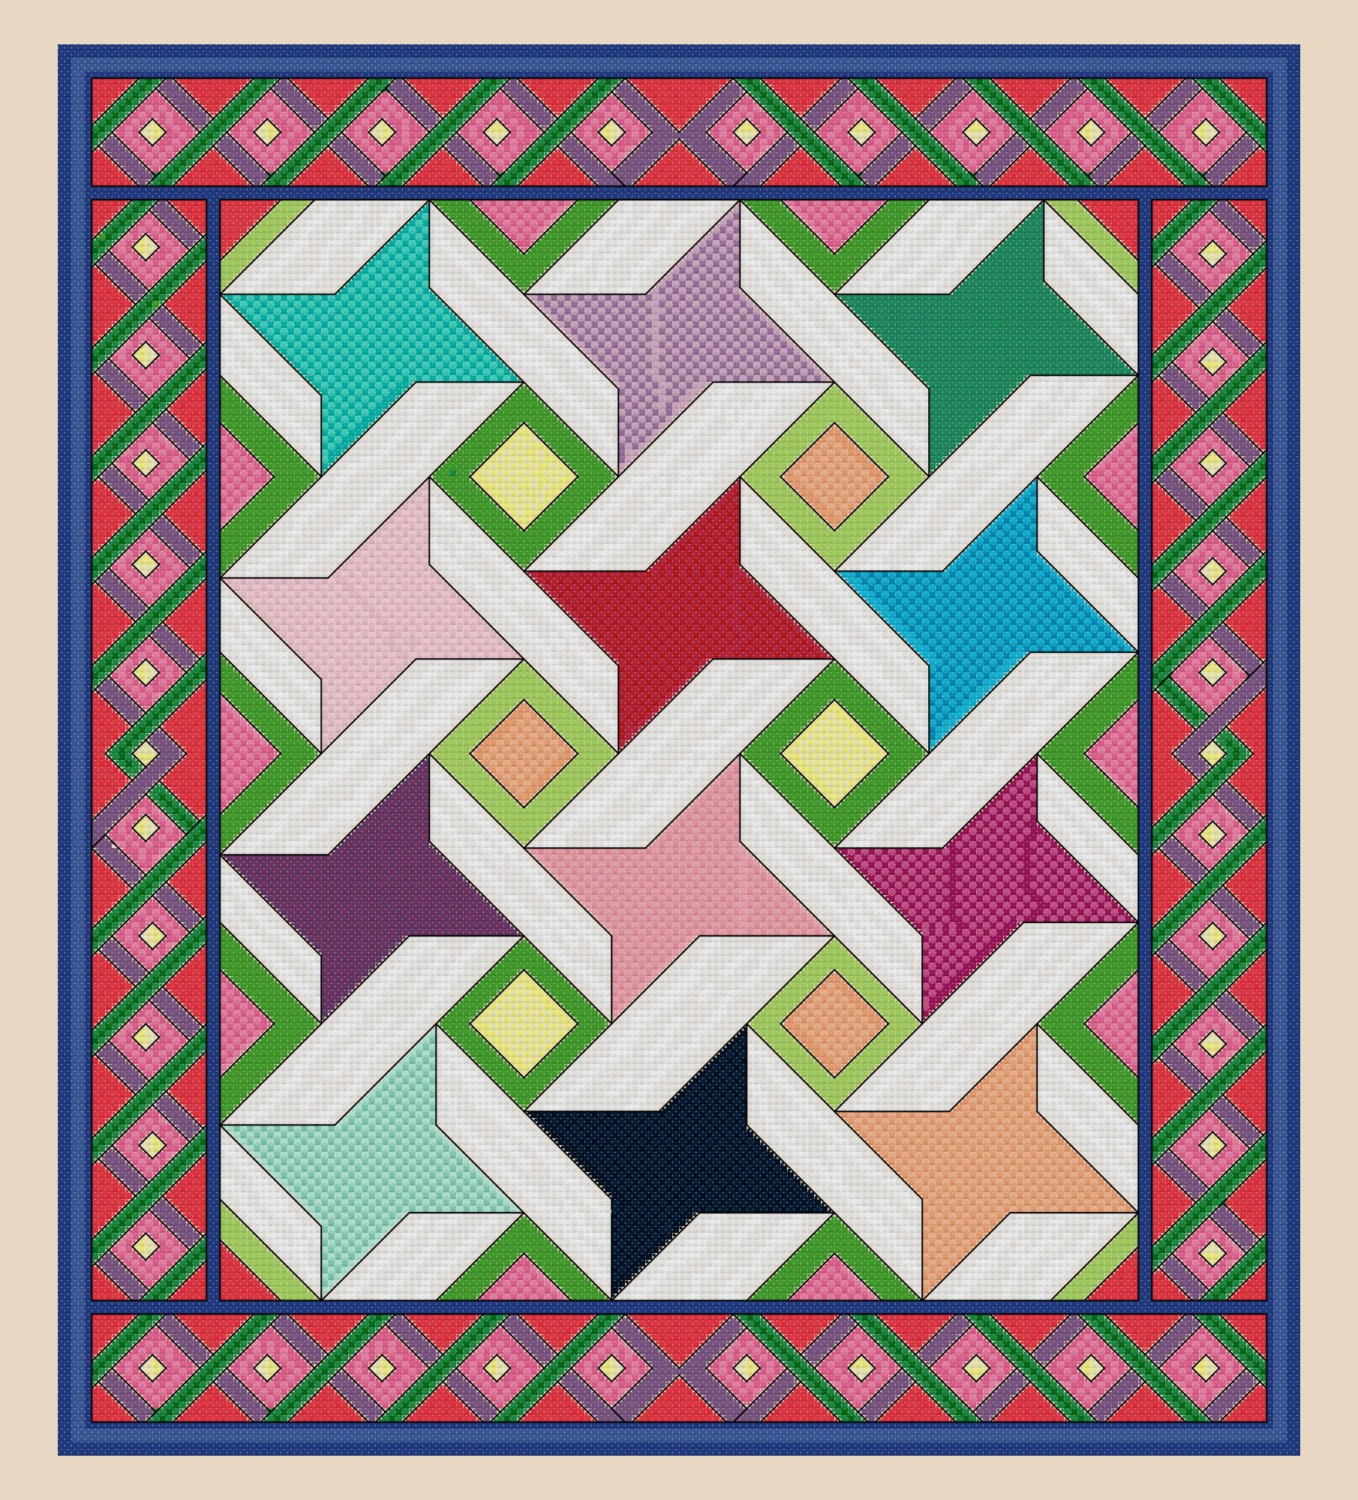 Quilt Patterns Cross Stitch : Cross Stitch Ribbon Star Quilt Pattern Design Chart PDF